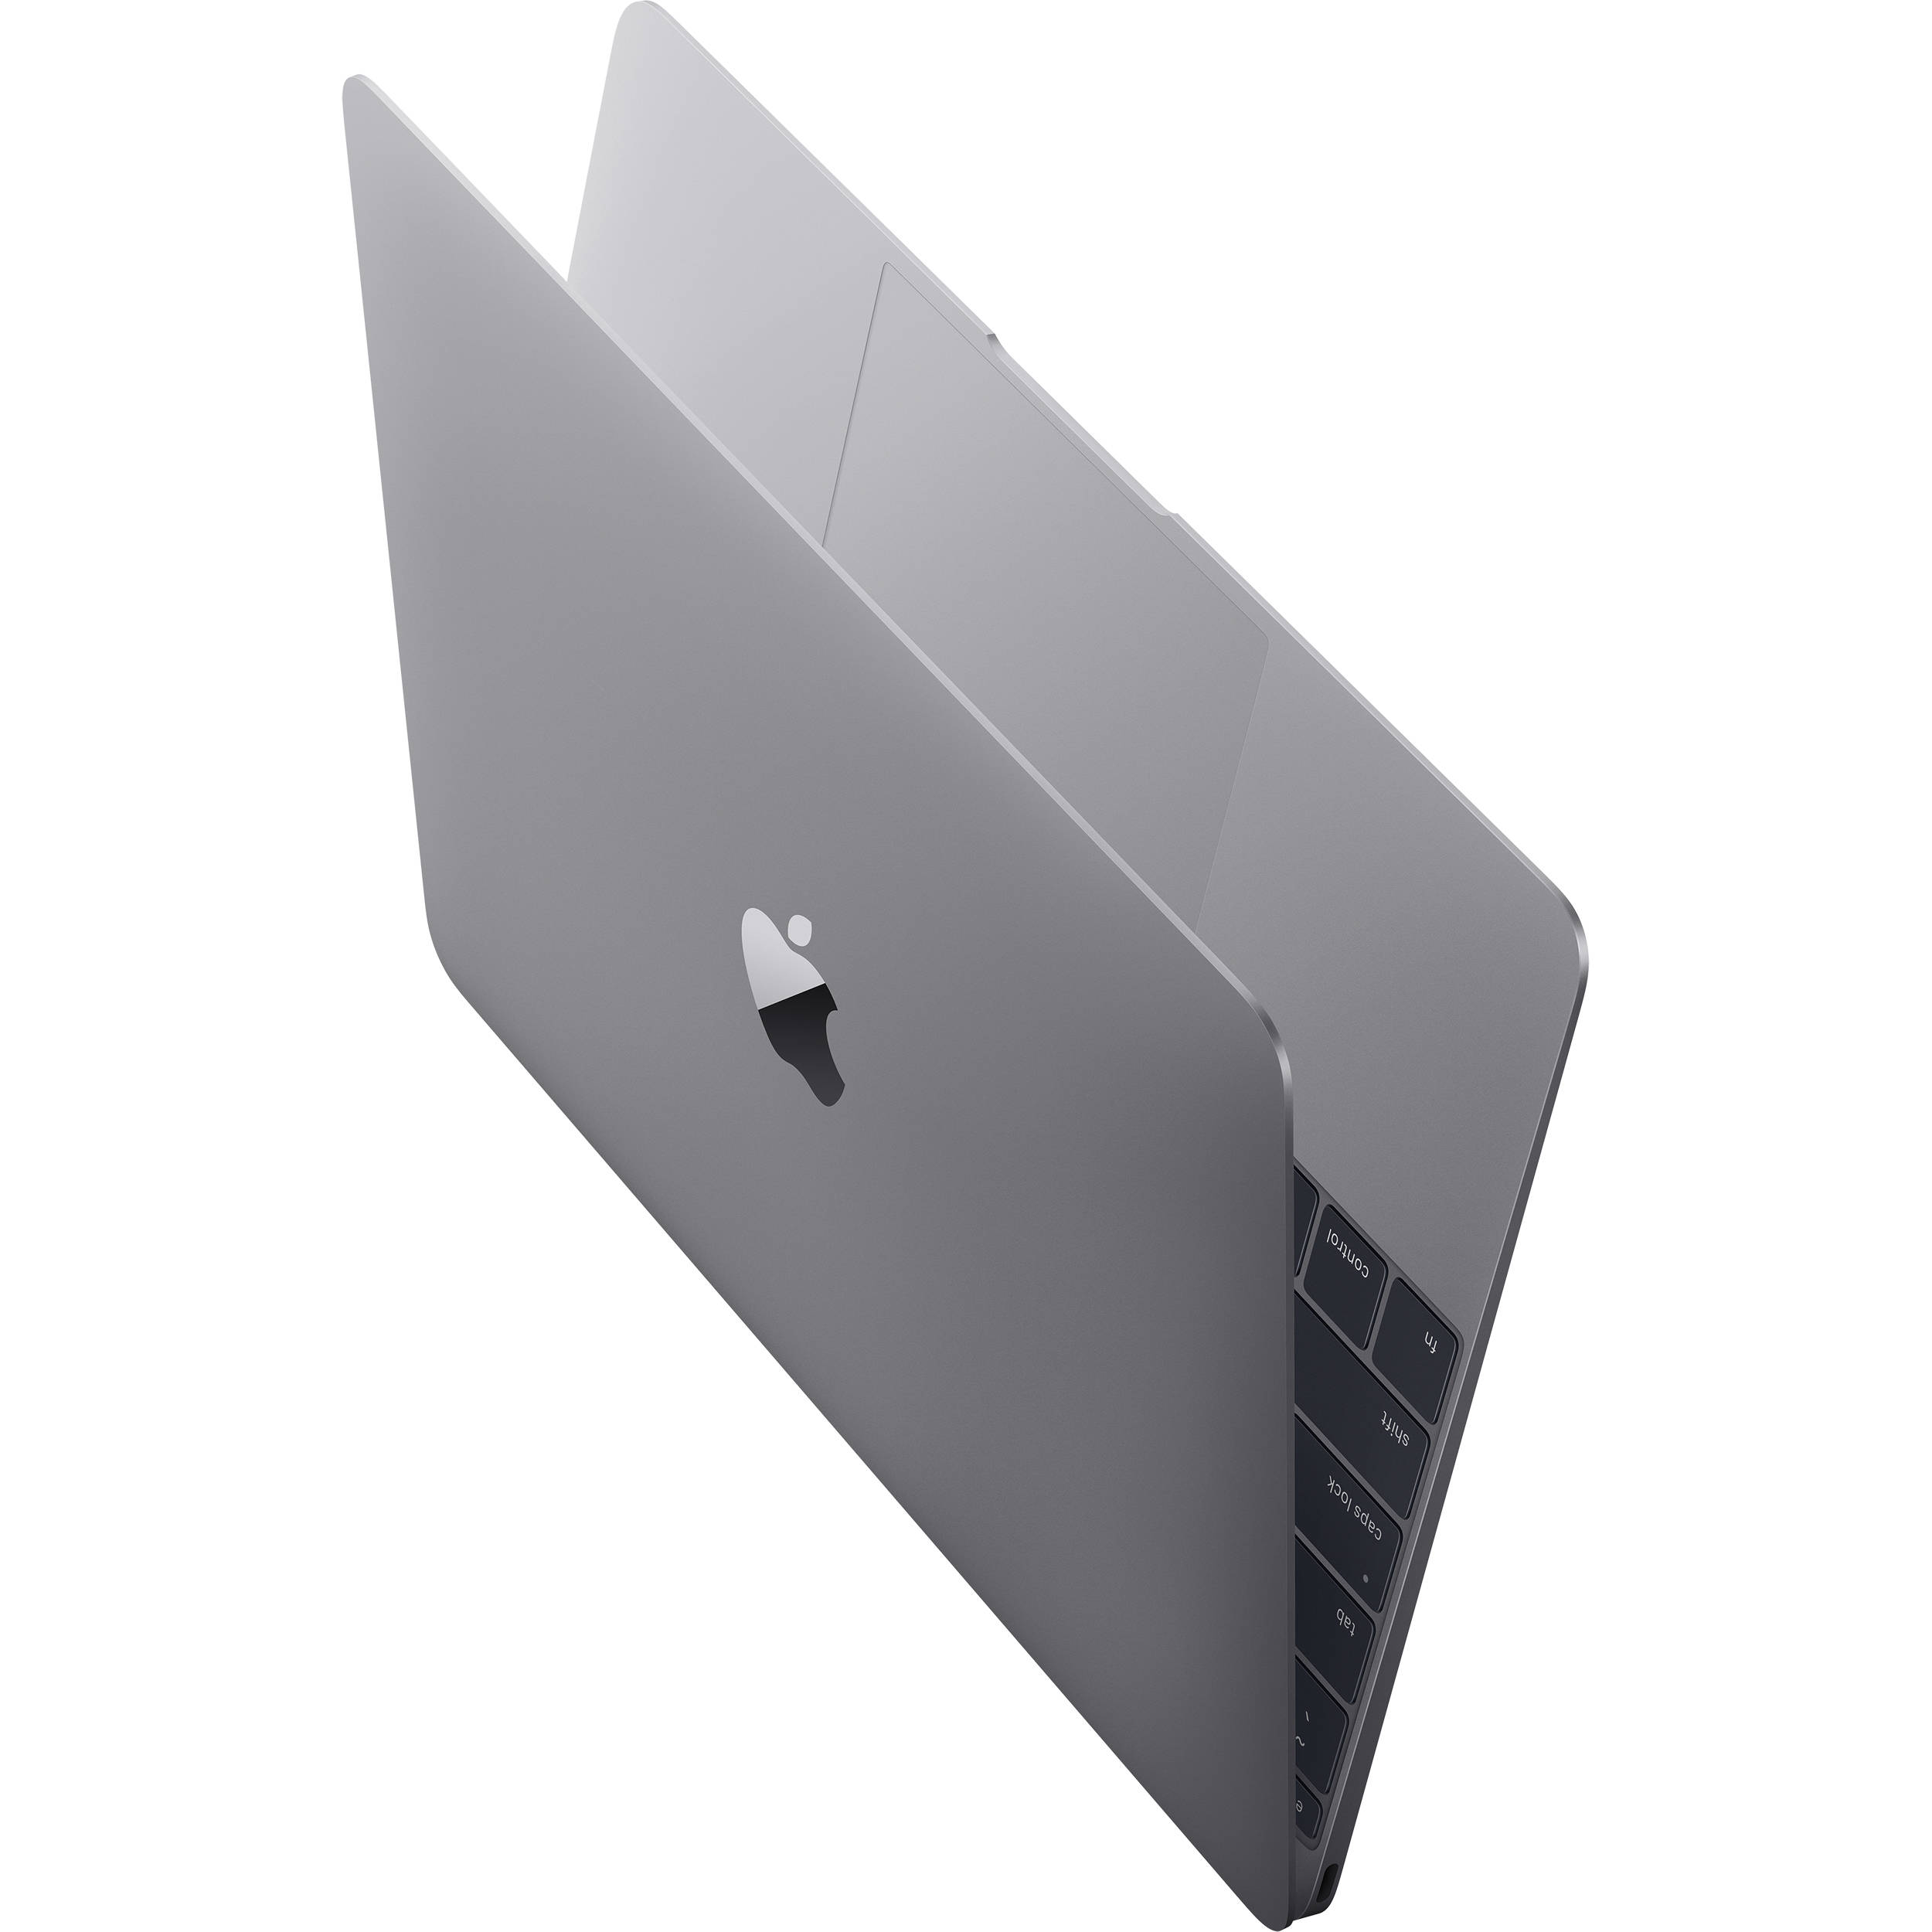 Macbook Pro 2016 -MLH42SA/A, ZA/A or ZP/A -  CPU Core I7 2.7Ghz/16GB/512GB/ Vga Radeon pro 455 2G/ 15.4'/ Touch bar